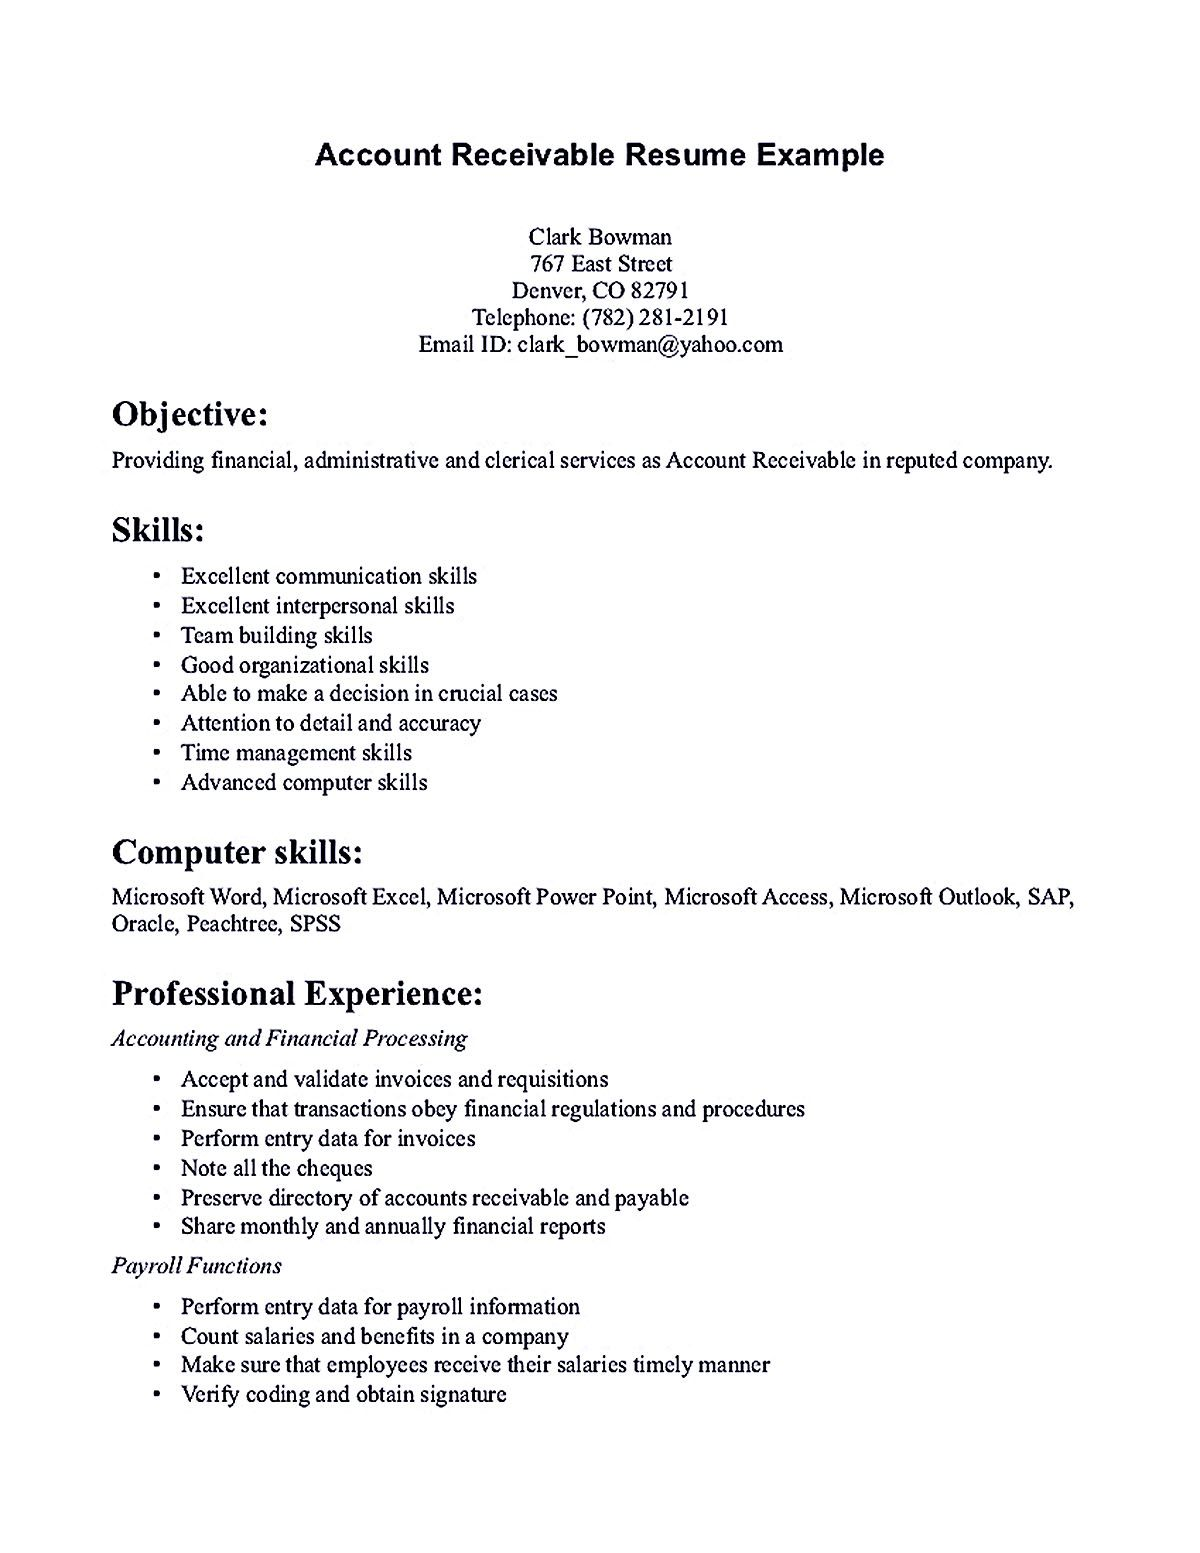 Account Receivable Resume Simple Account Receivable Resume Shows Both Technical And Interpersonal .